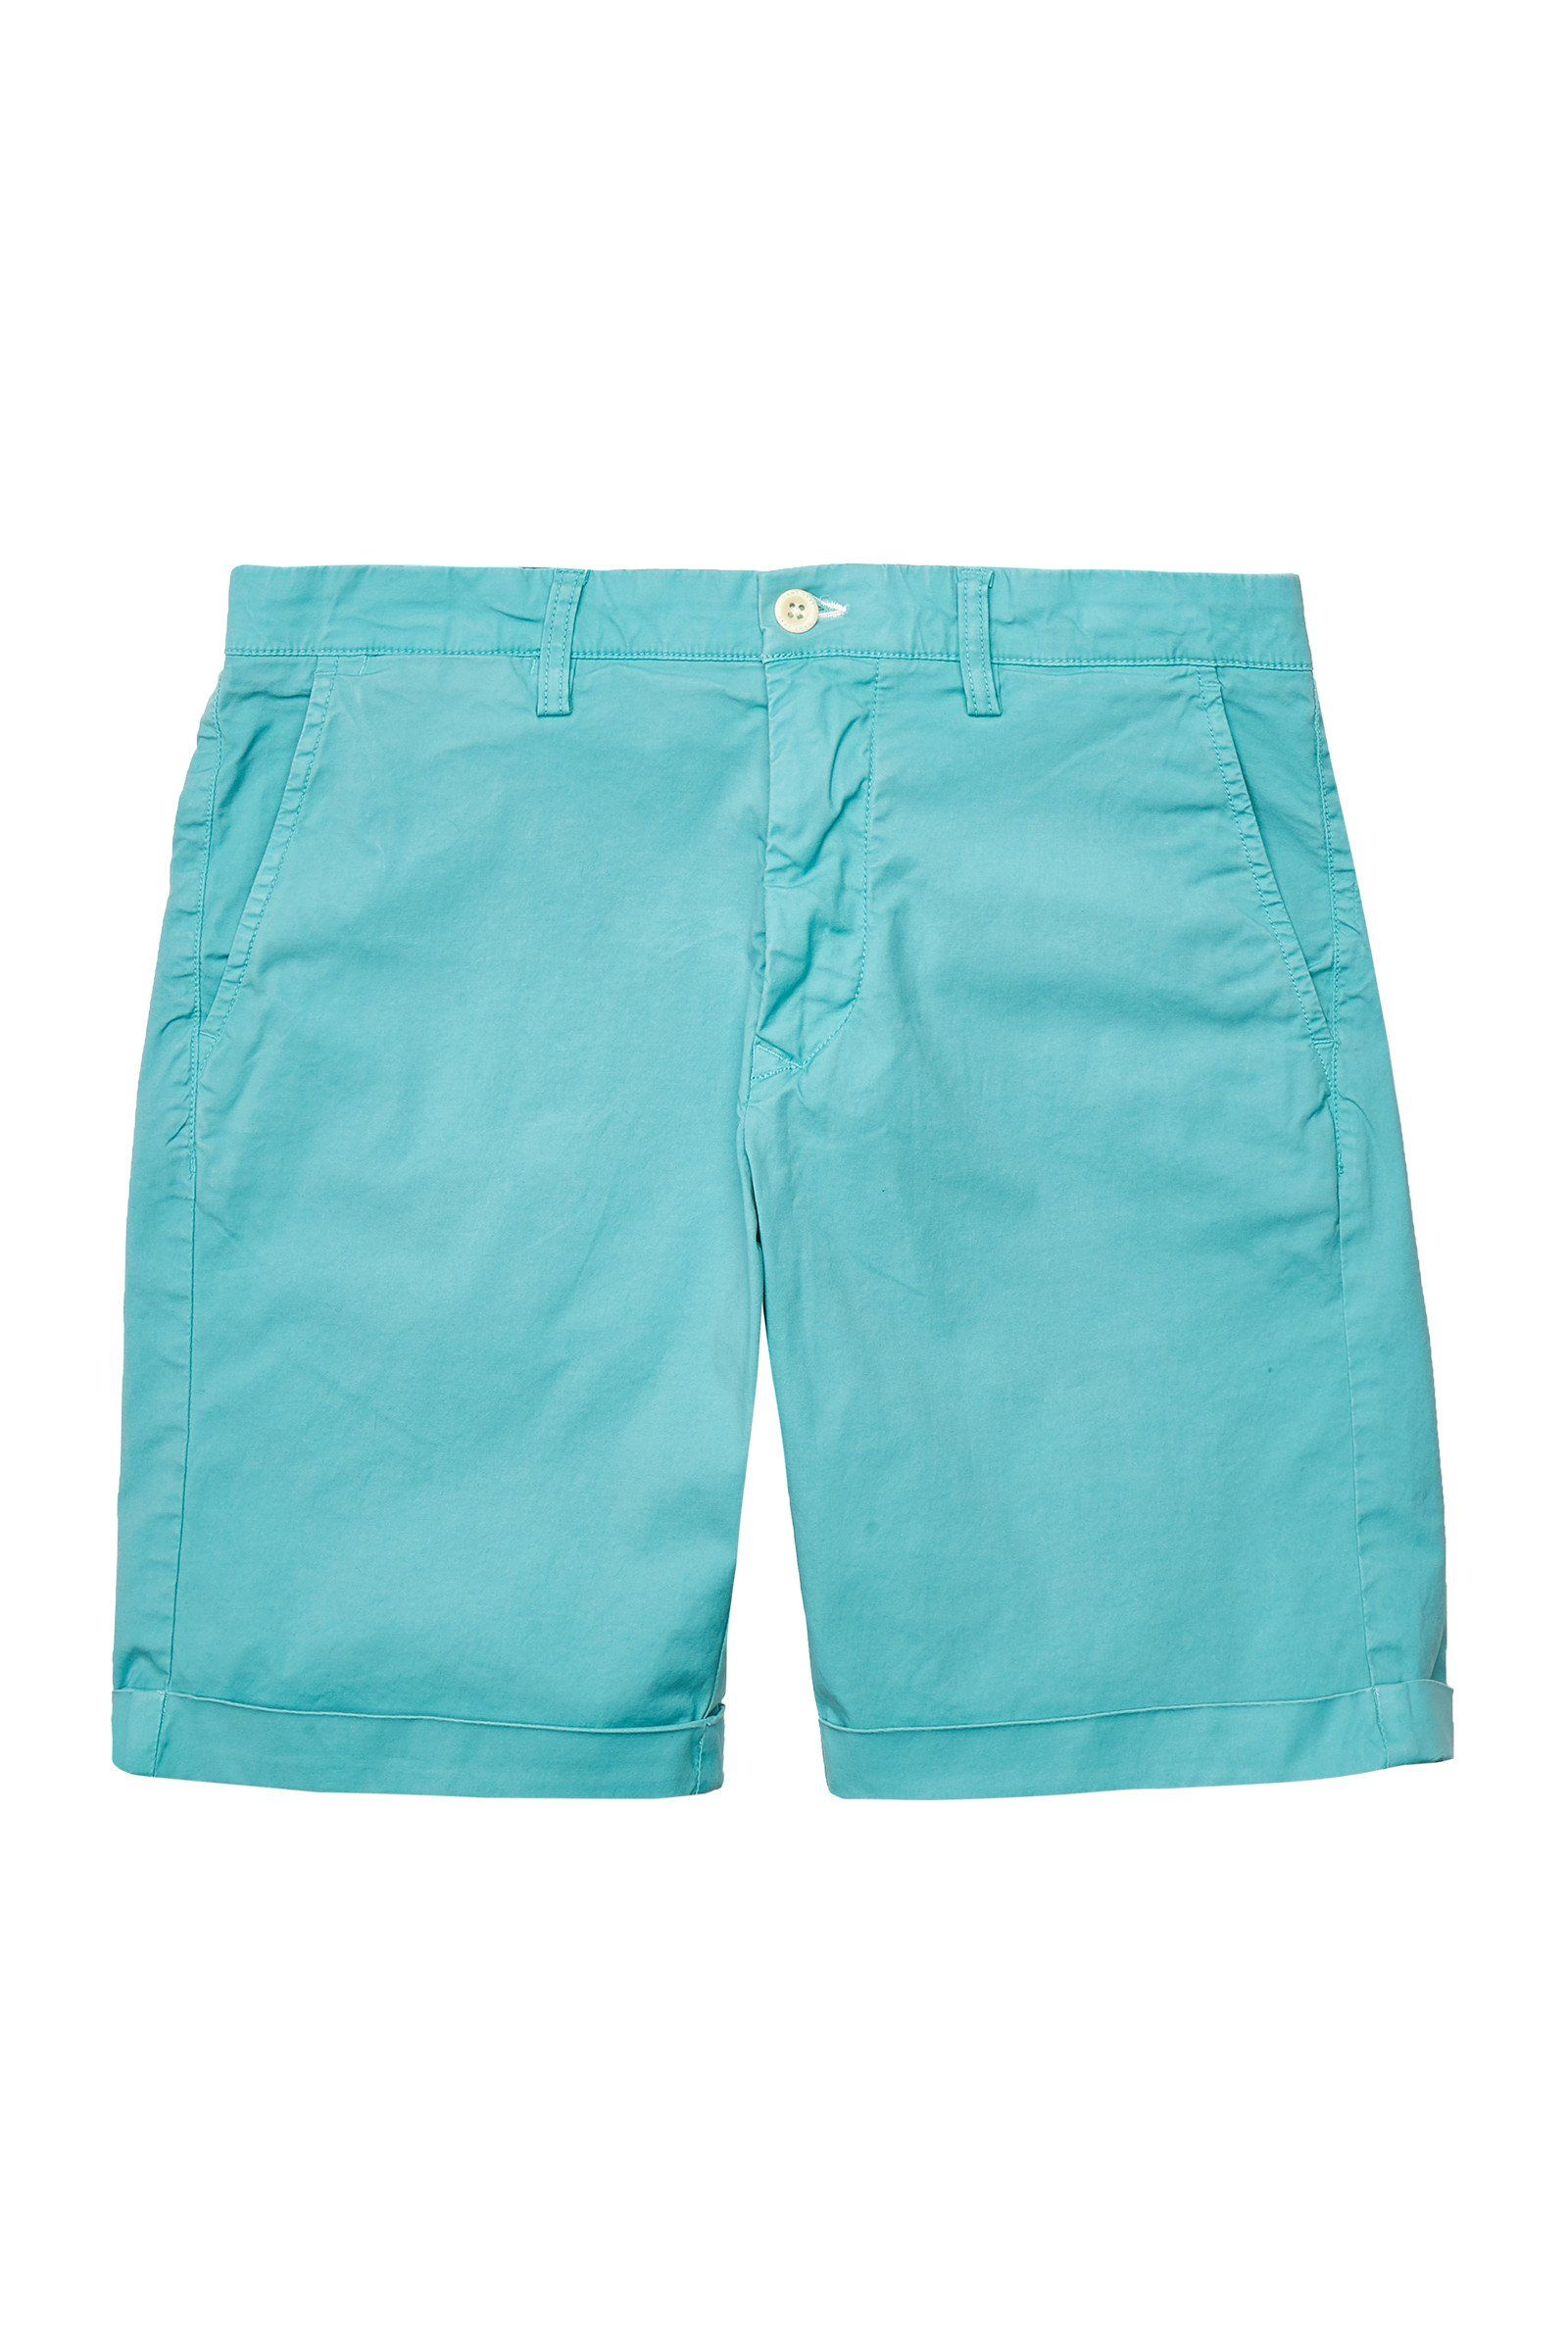 Gant - Regular Fit Sunfaded Shorts in Aqua 35